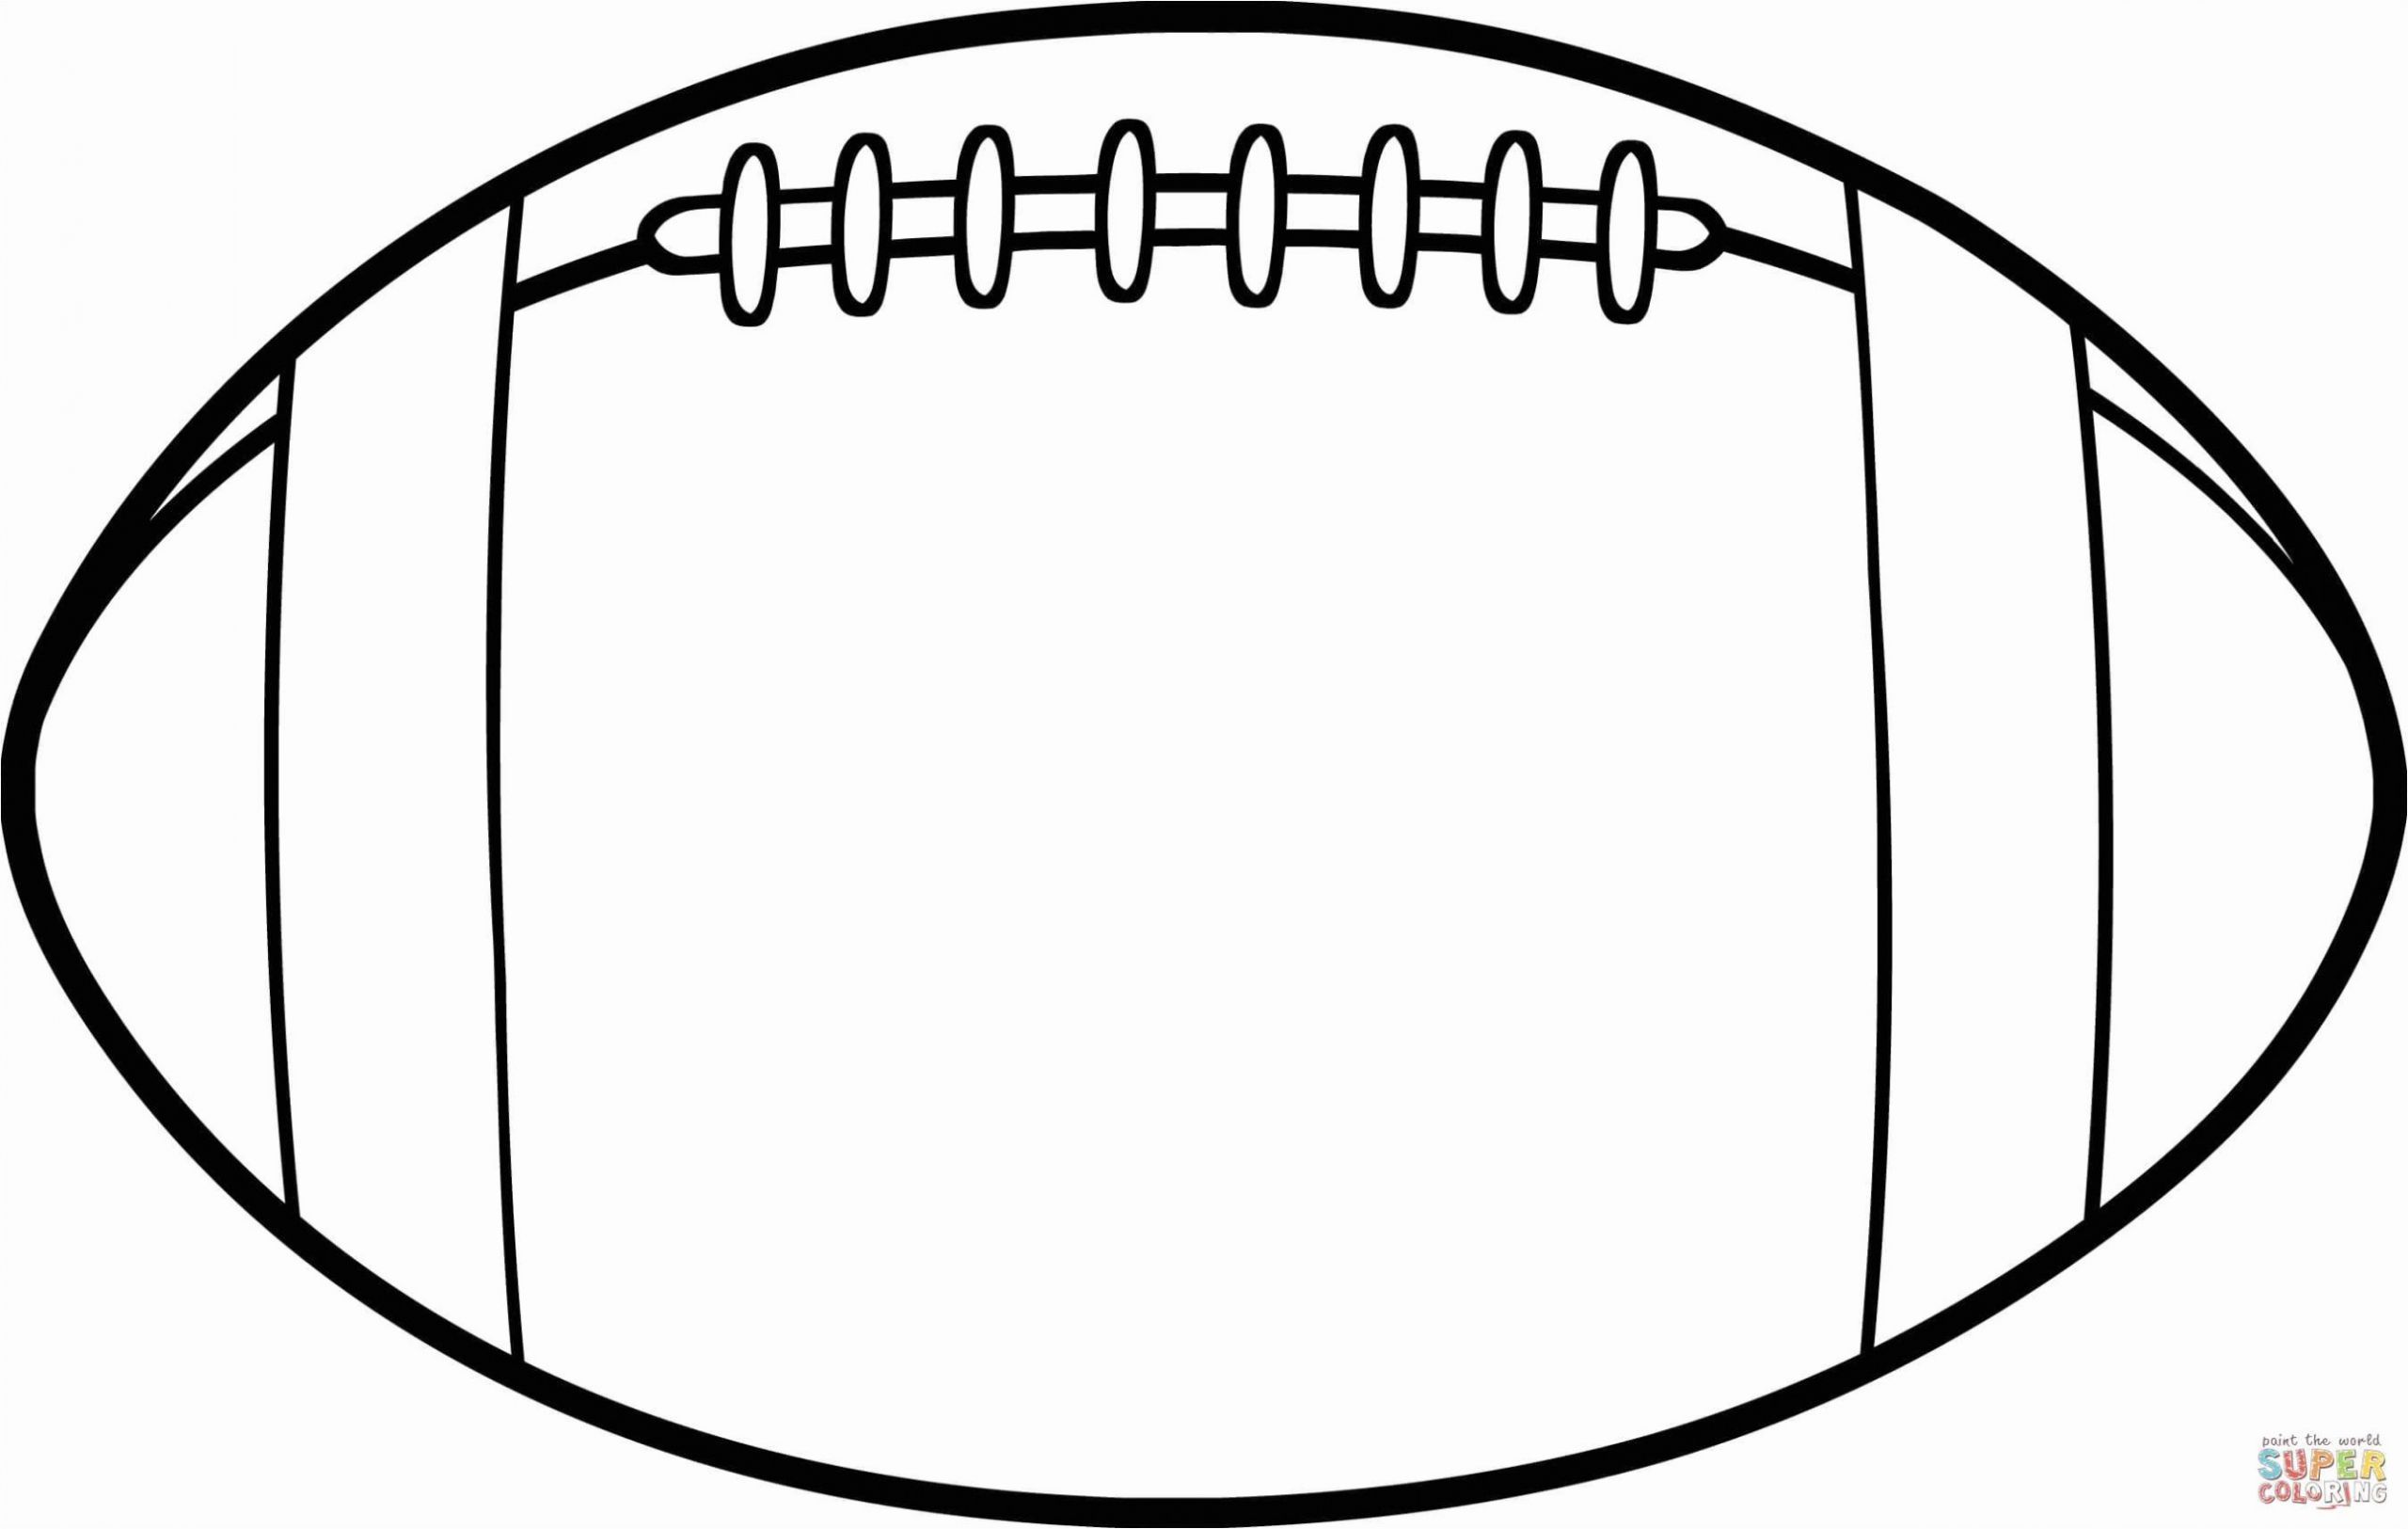 Printable Sport Coloring Sheets New Eagles Football Coloring Pages Football Coloring Pages Football Template American Football